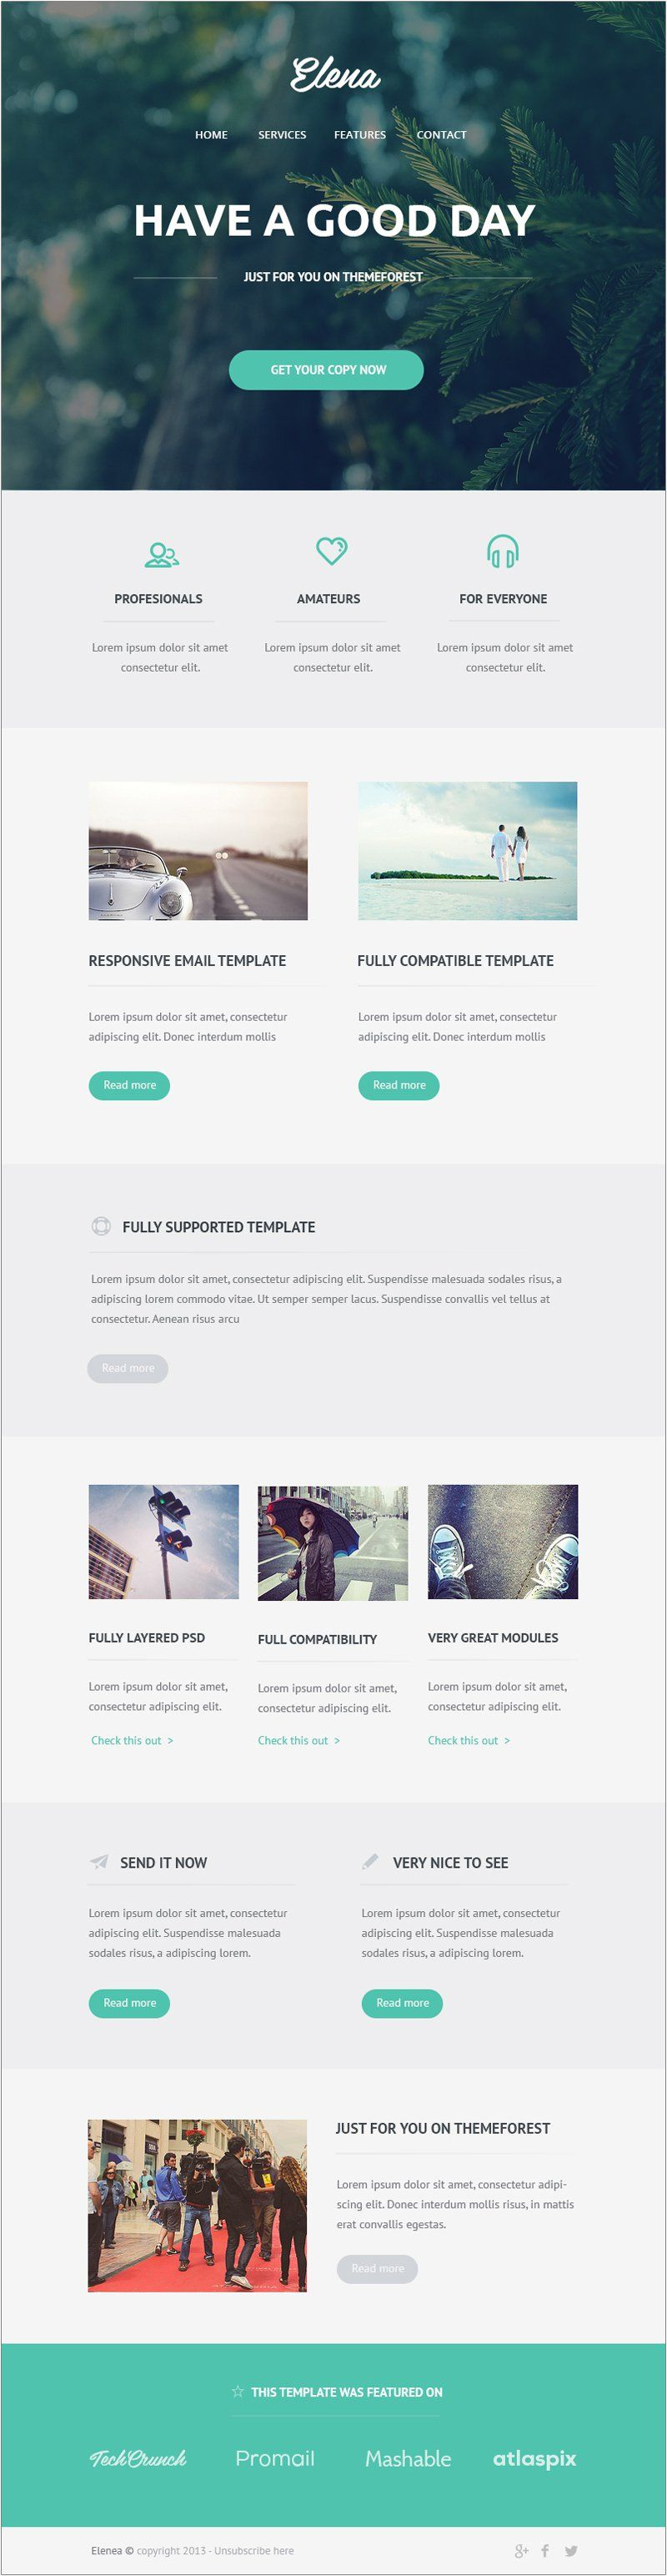 Email Marketing Template Psd Pesquisa Google Web Strony - Free email advertisement template